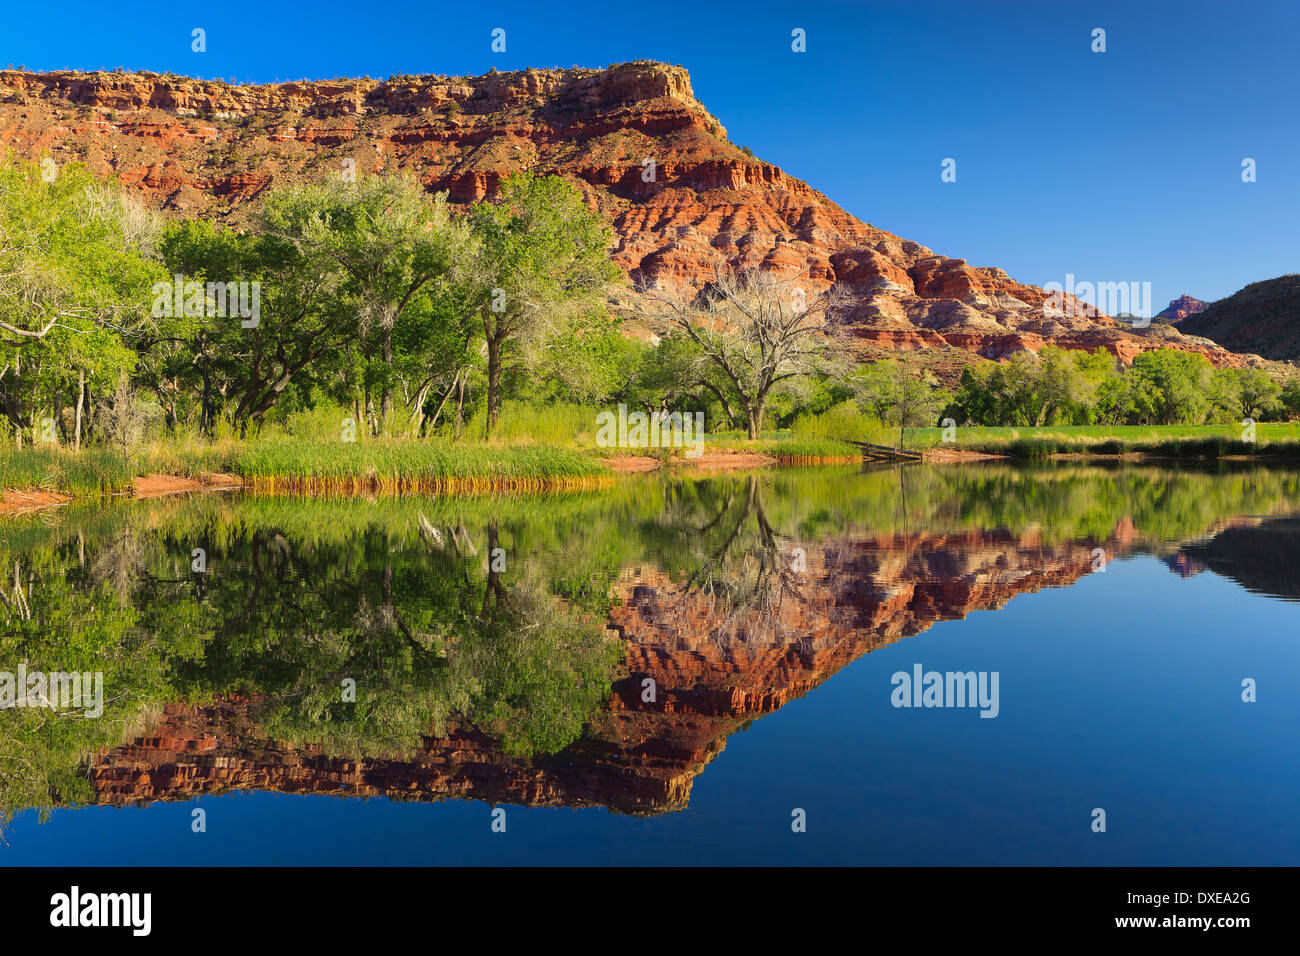 A Morning Reflection in Zion National Park, Utah, USA - Stock Image